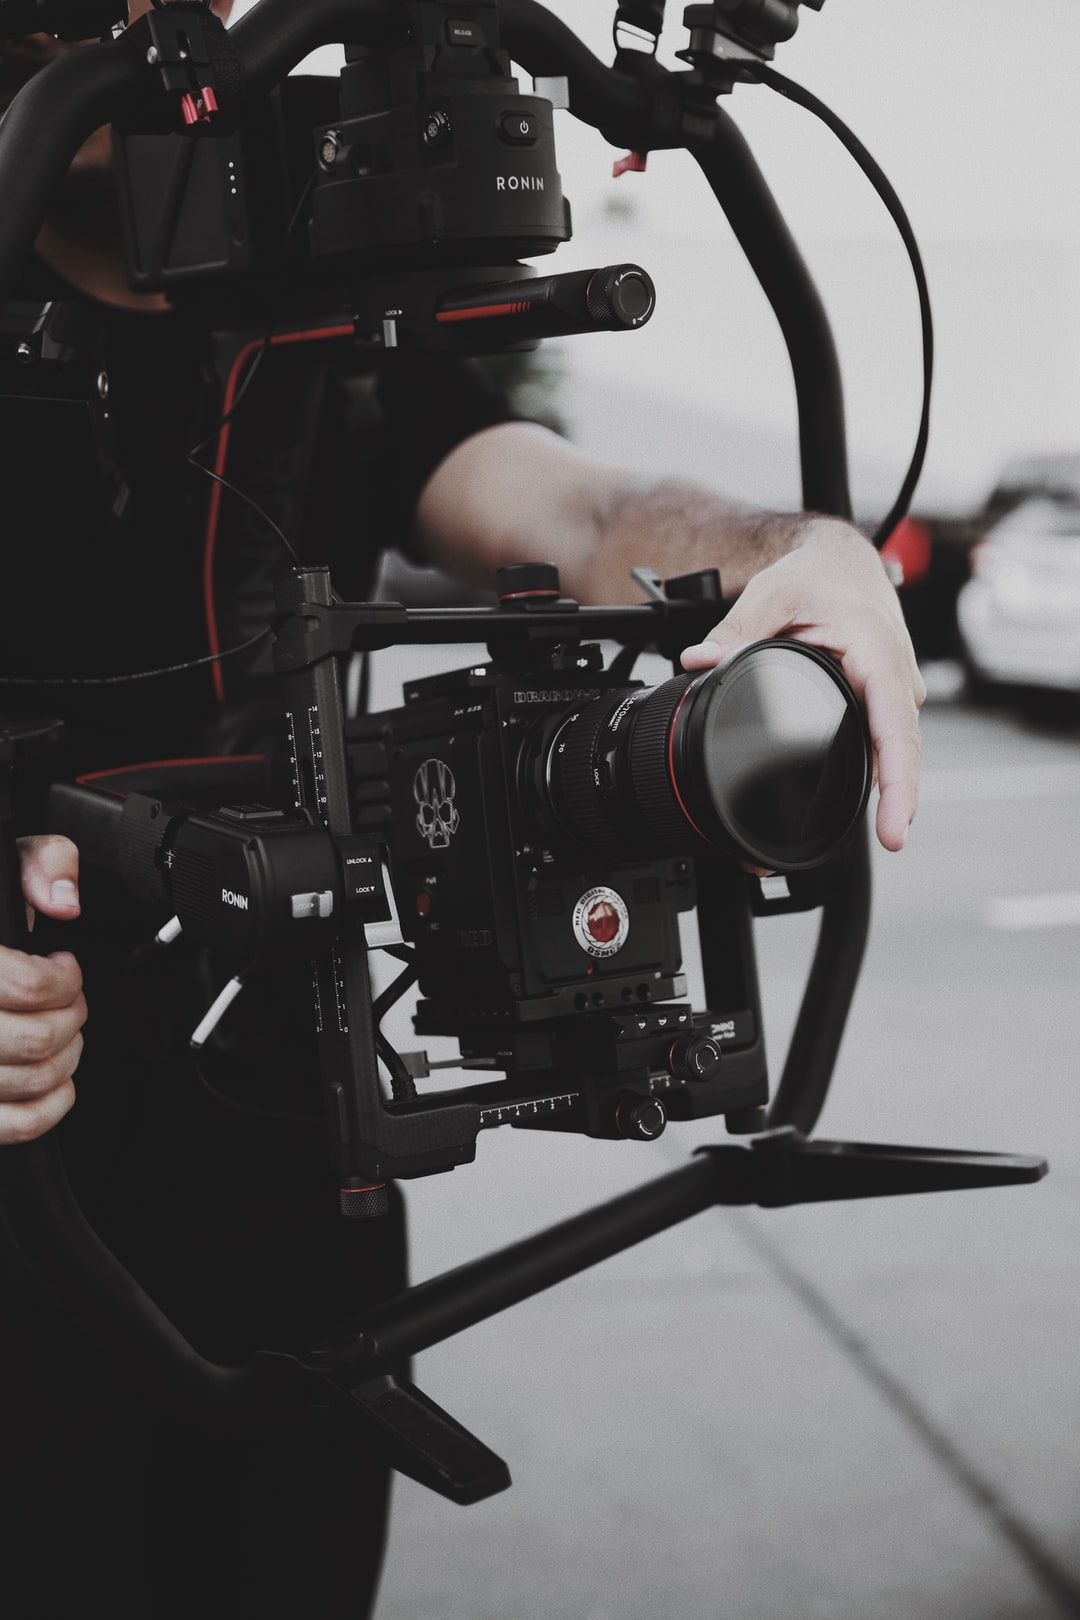 Ronin Gimbal with a Red Gemini Camera